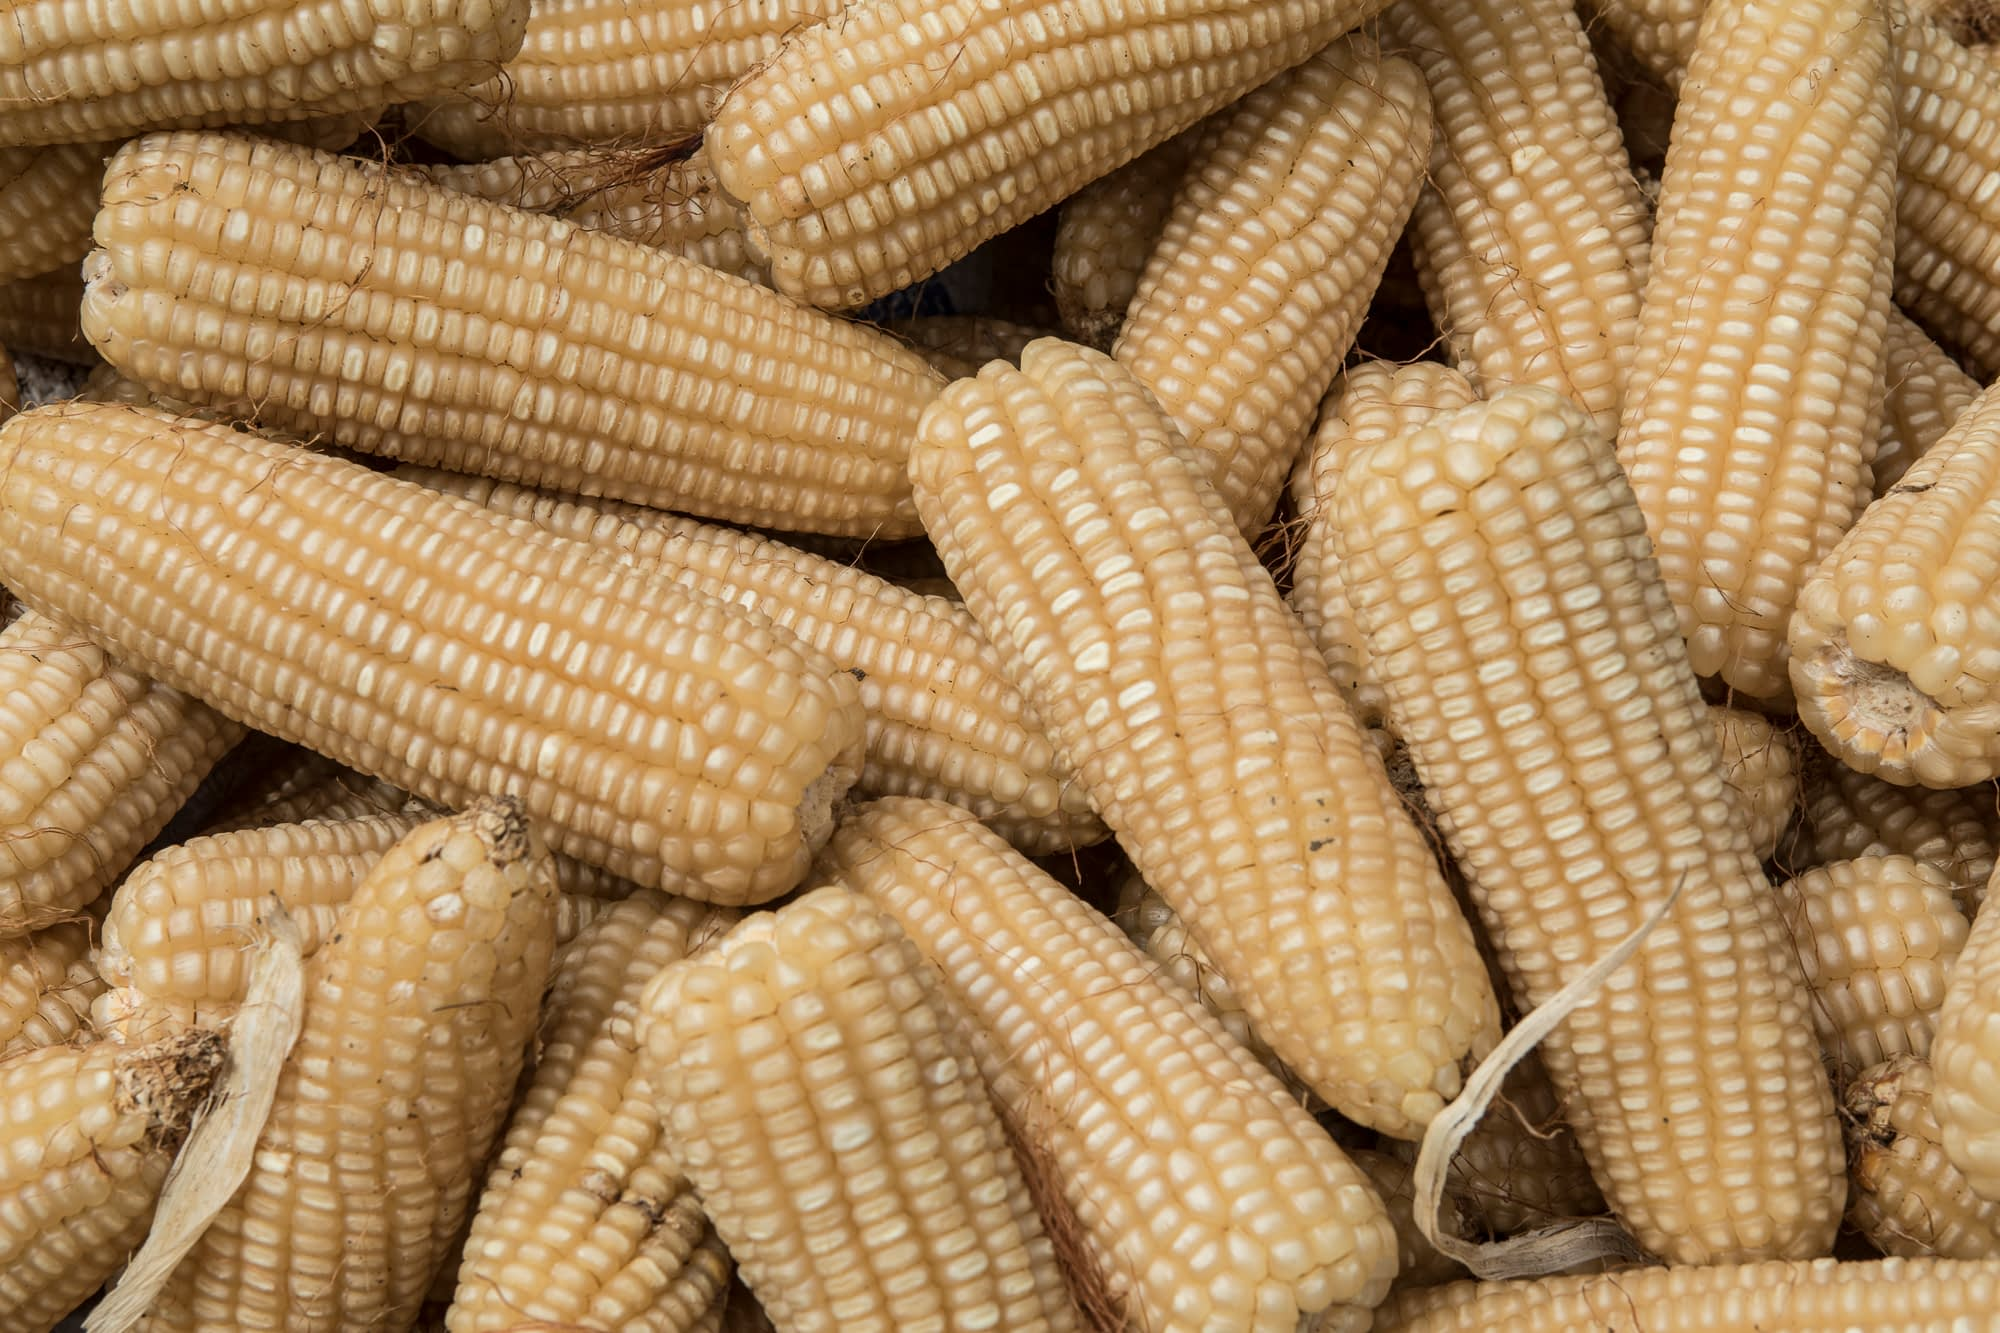 New zinc-biofortified maize variety BIO-MZn01. (Photo: CIMMYT)